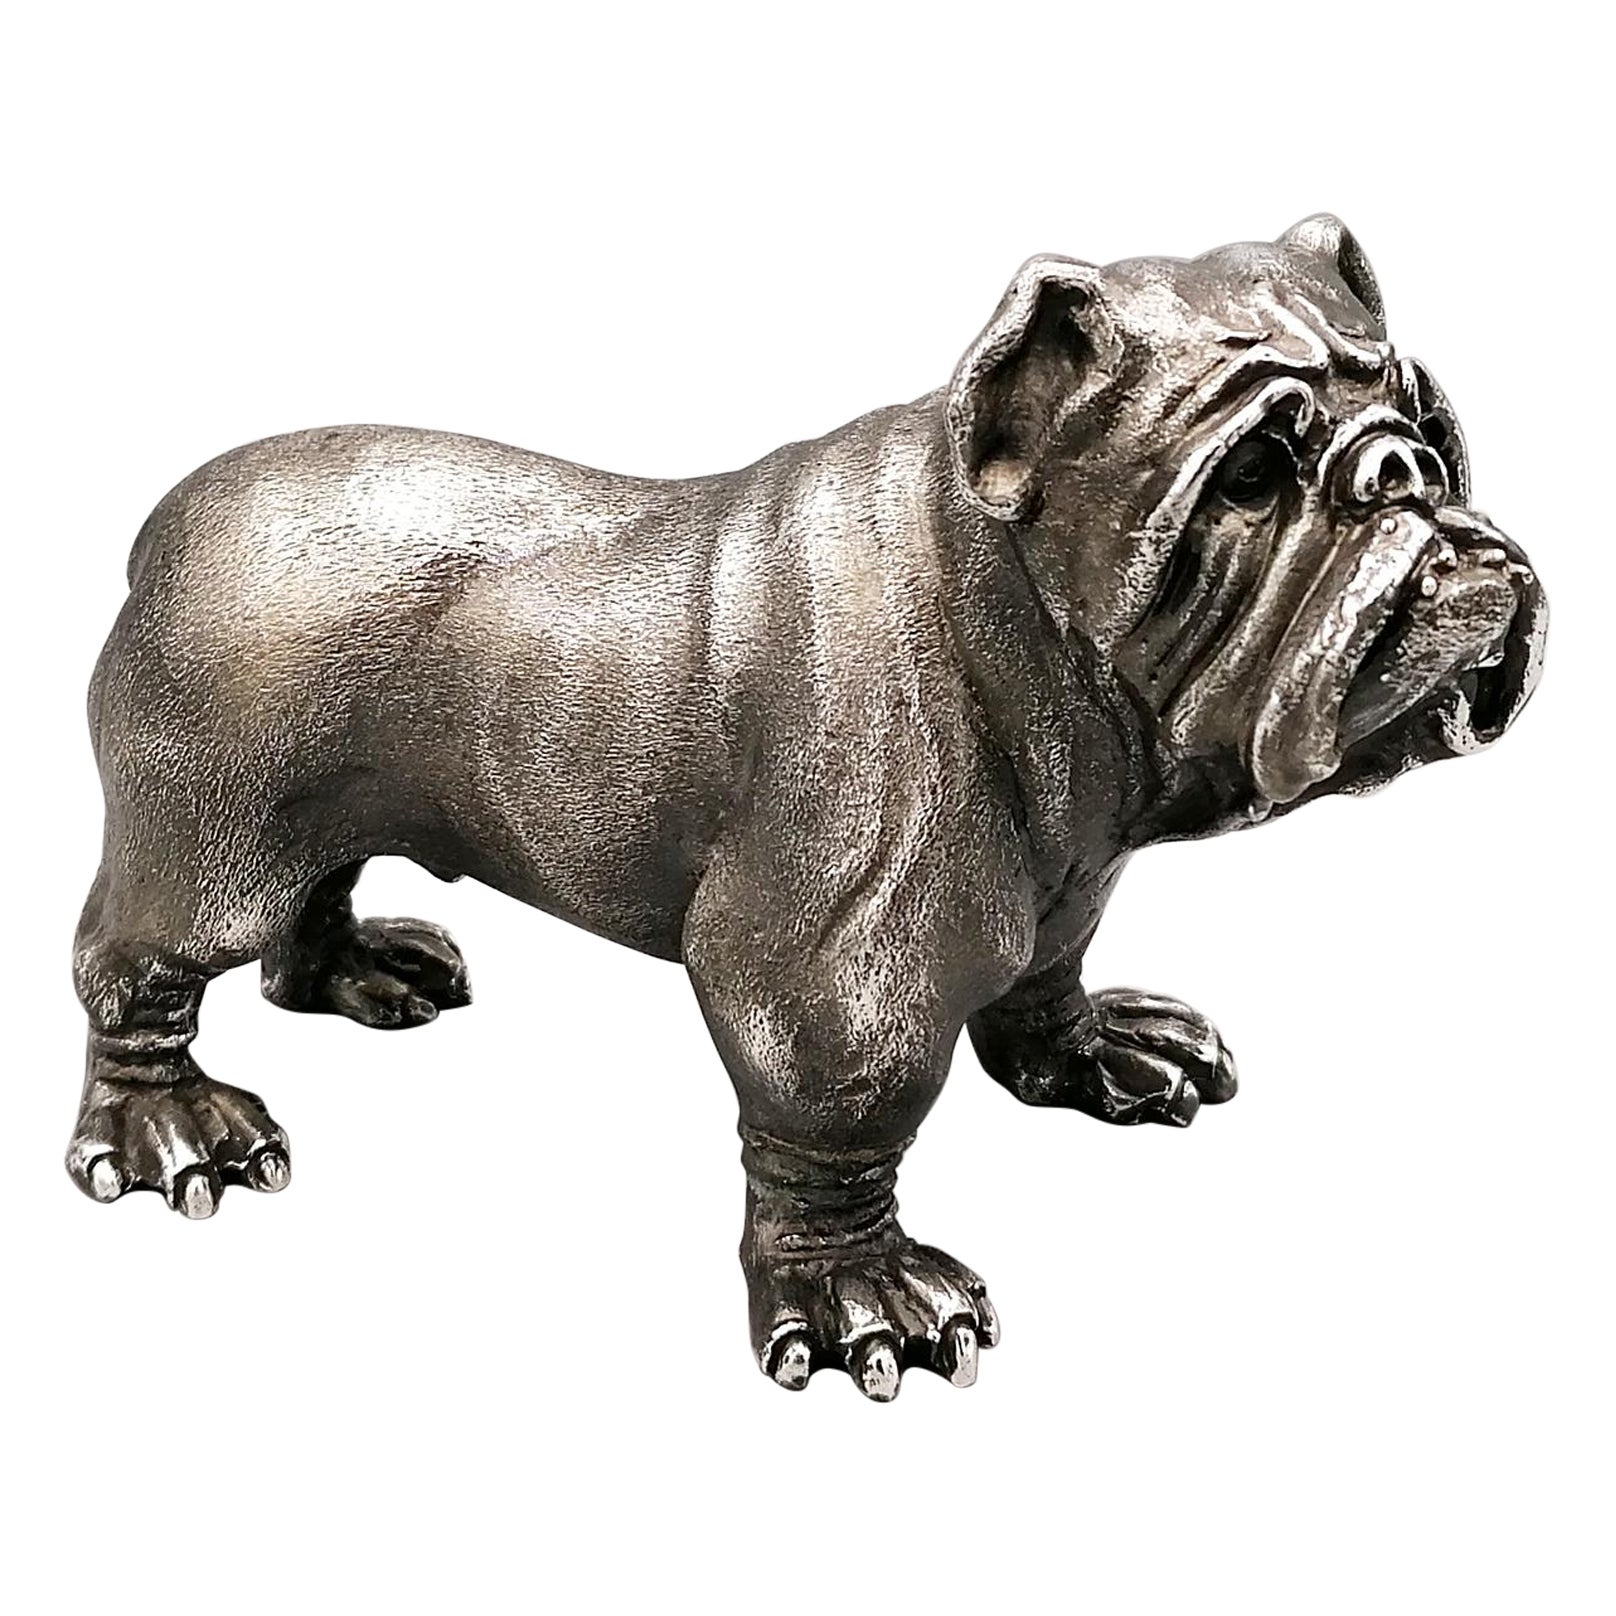 20th Century Solid Silver Sculpture of a Bulldog